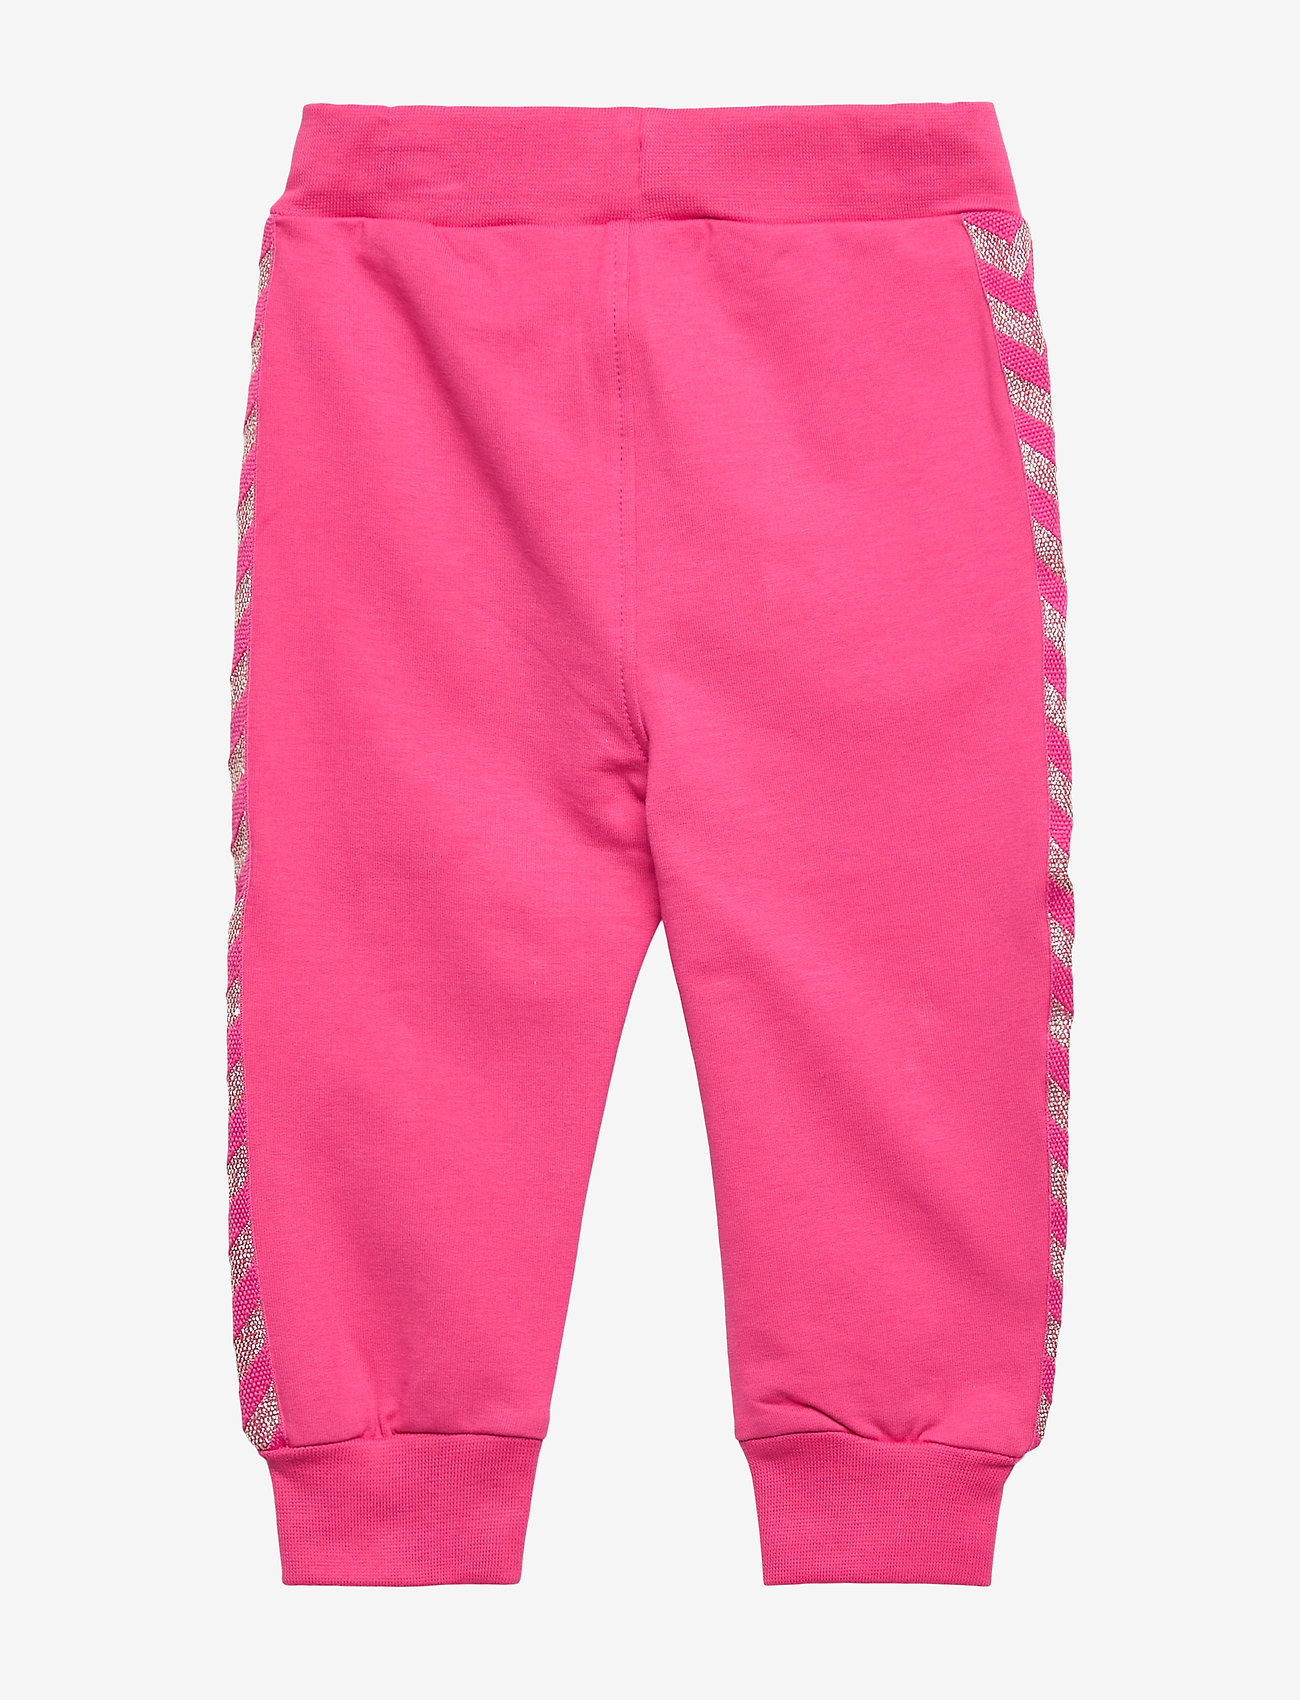 Hummel - hmlMARGRET PANTS - joggings - raspberry sorbet